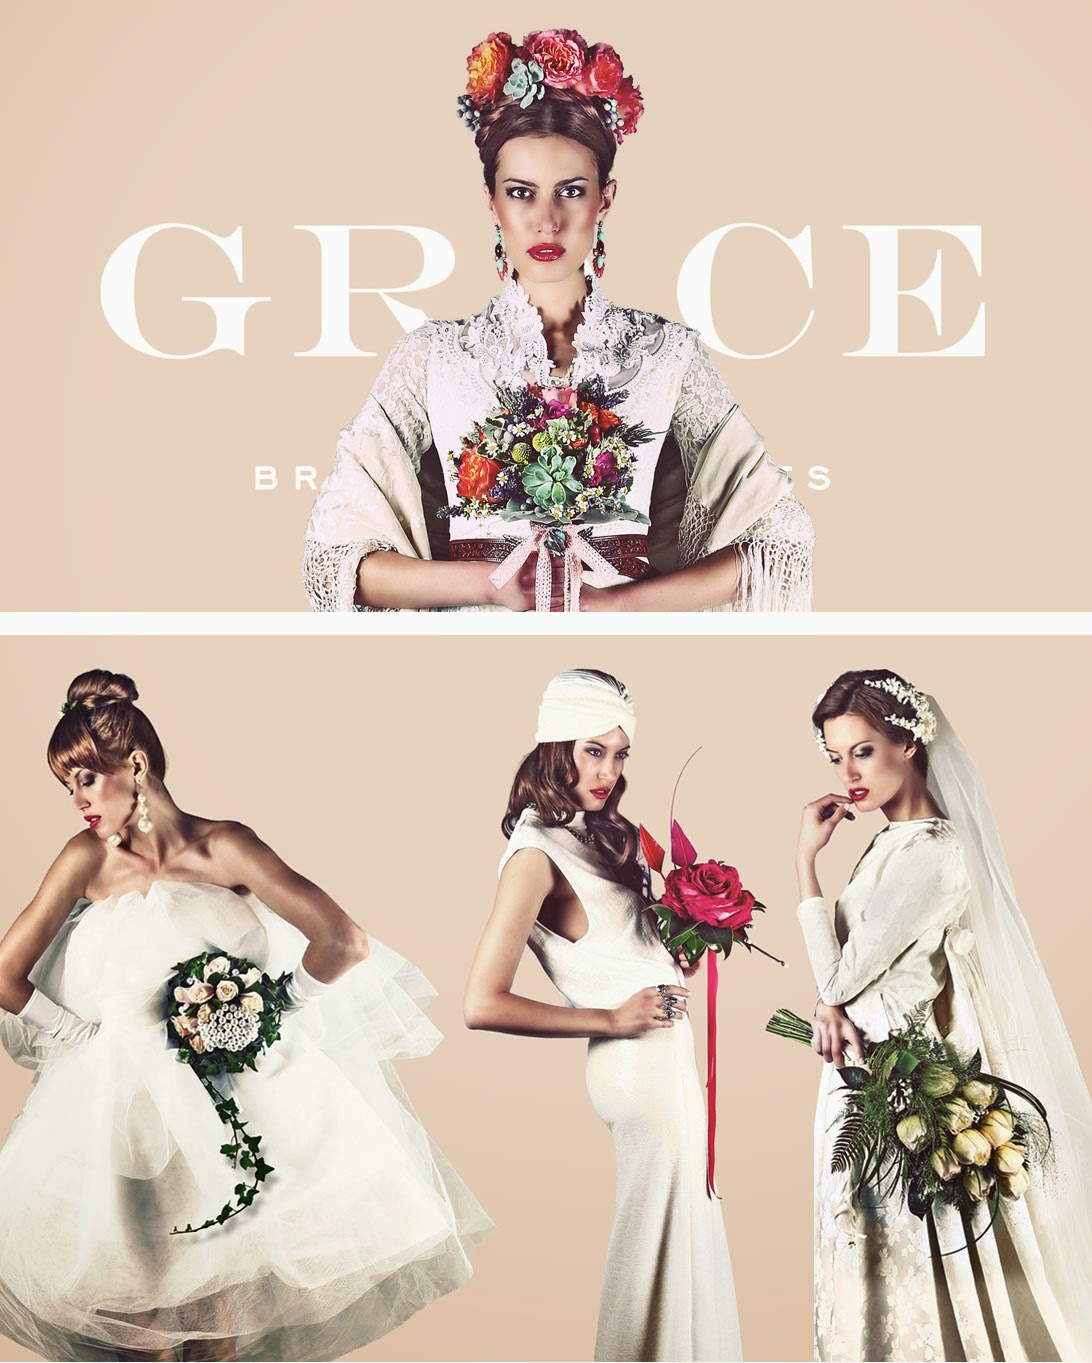 Grace Bridal Industries estará en la exposición de Atelier Couture